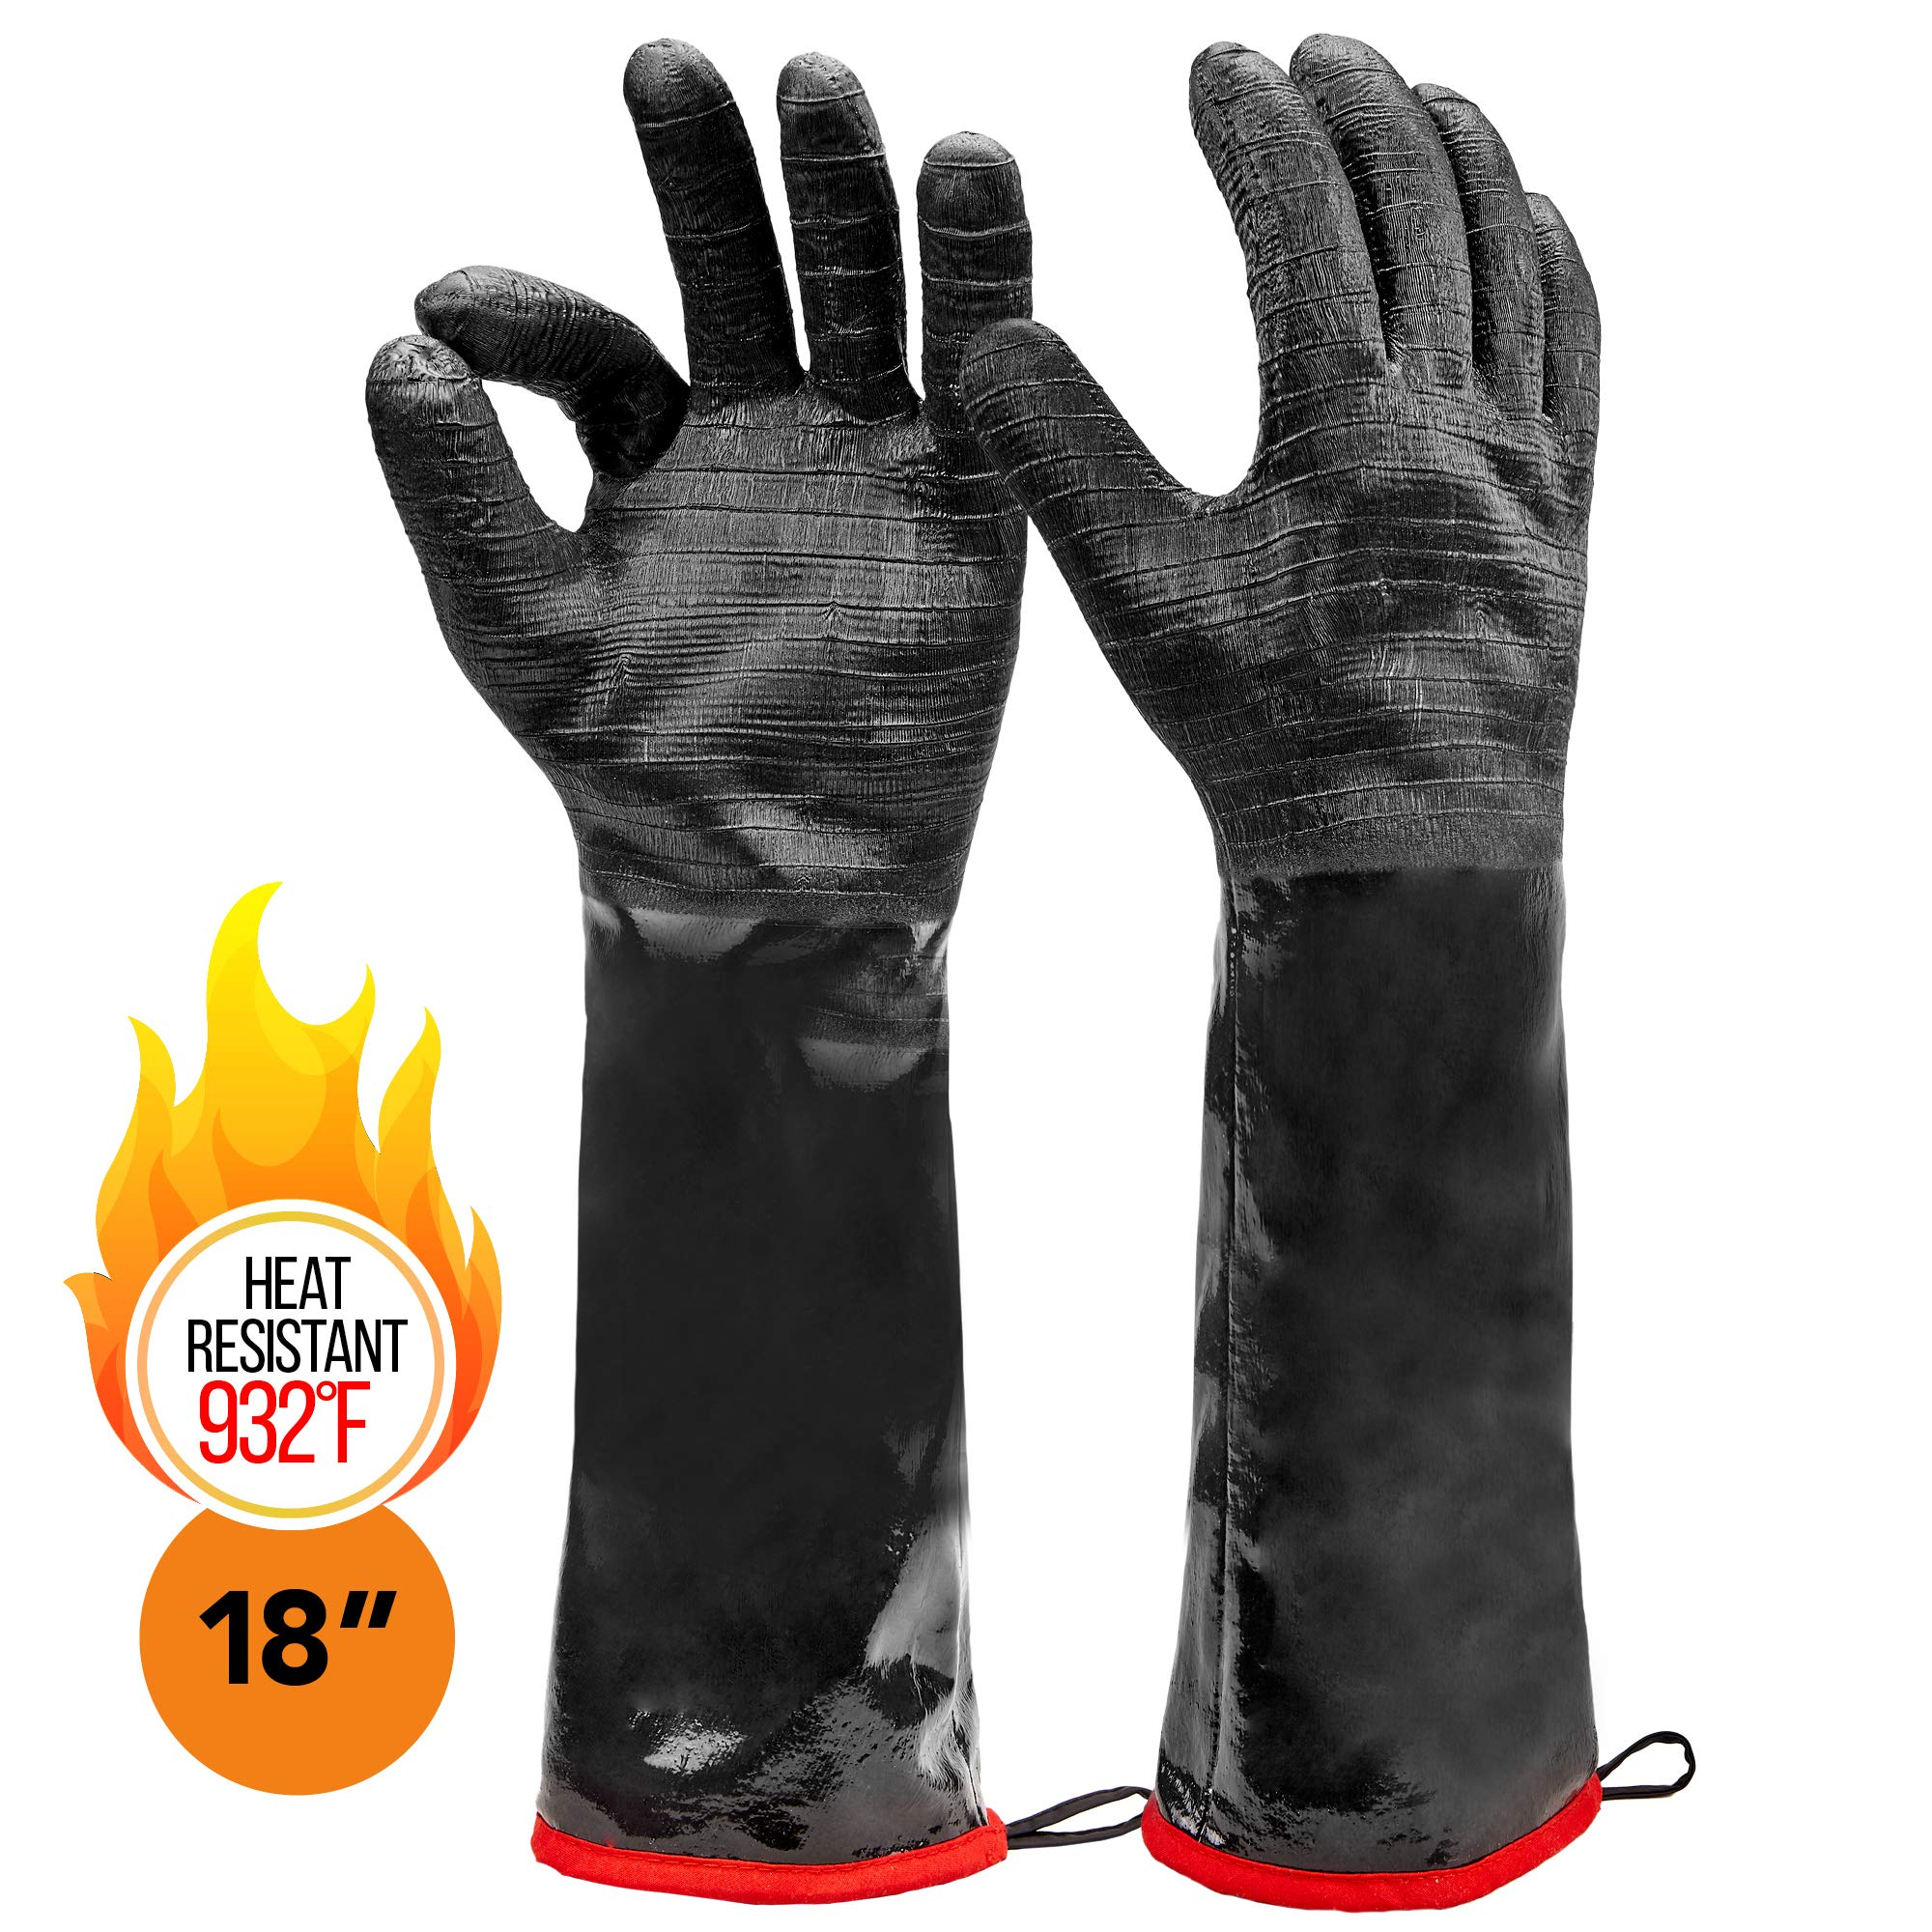 Heatsistance Heat Resistant BBQ Gloves,Grill Gloves,18'' Long Sleeve, Large - Textured Grip to Handle Wet, Greasy or Oily Foods - Fire and Food Safe Oven Mitts for Smoker, Grills and Barbecue by Heatsistance